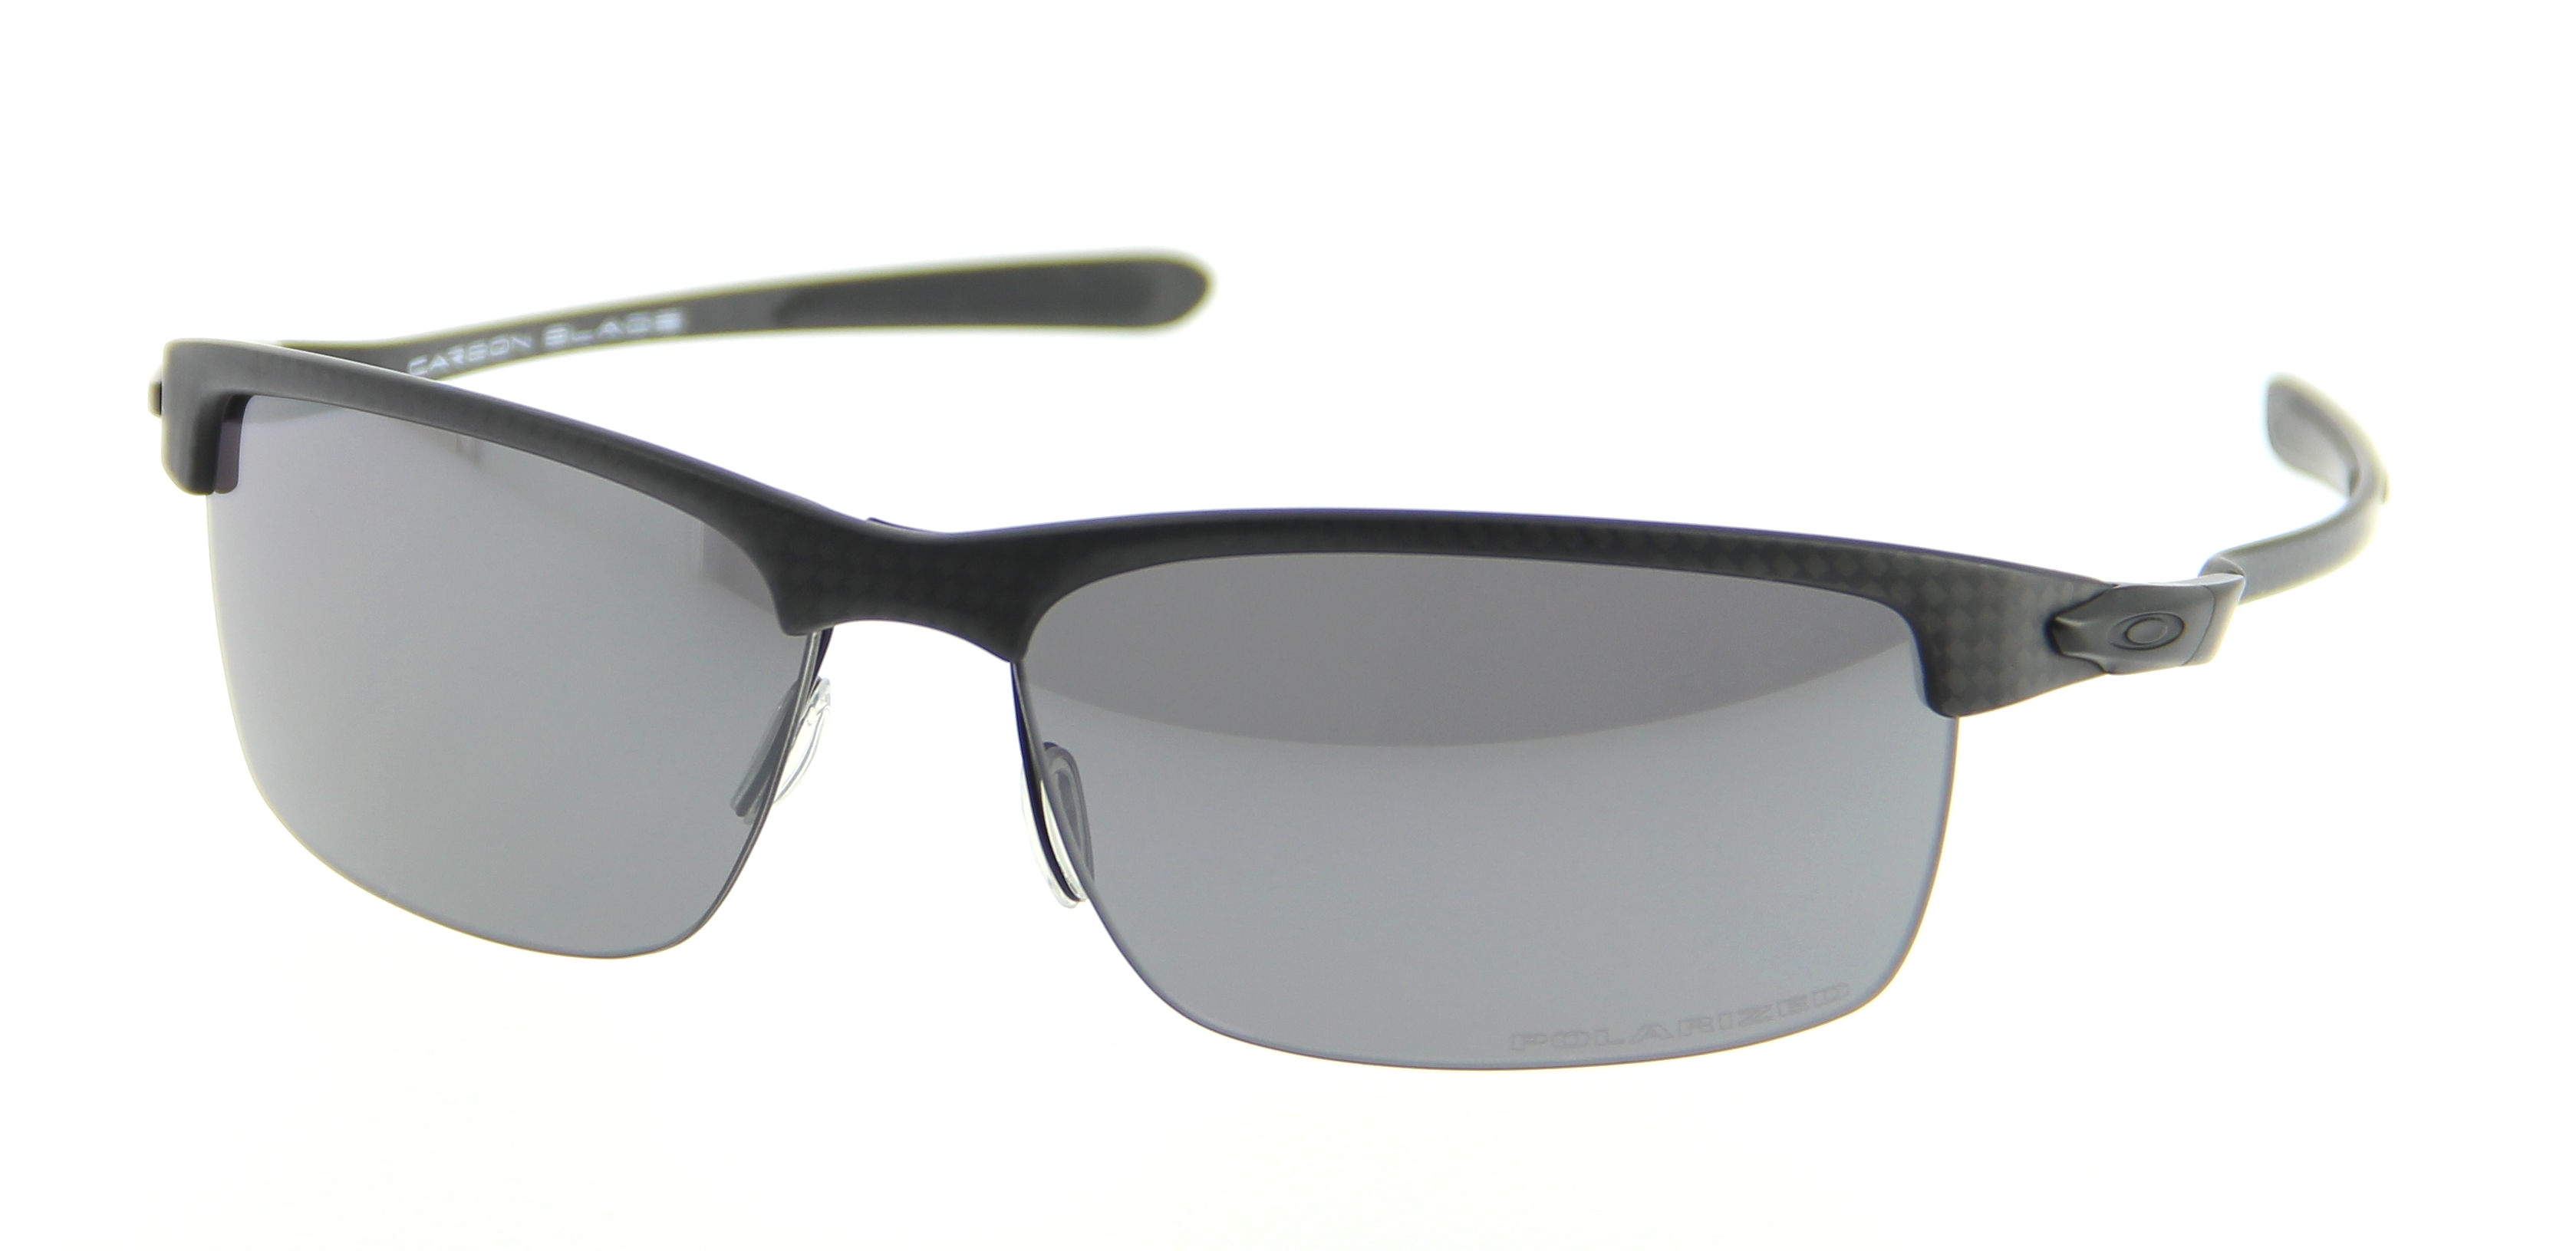 Rimless Glasses Oakley : Sunglasses OAKLEY OO 9174 917403 66/10 Man gris rectangle ...